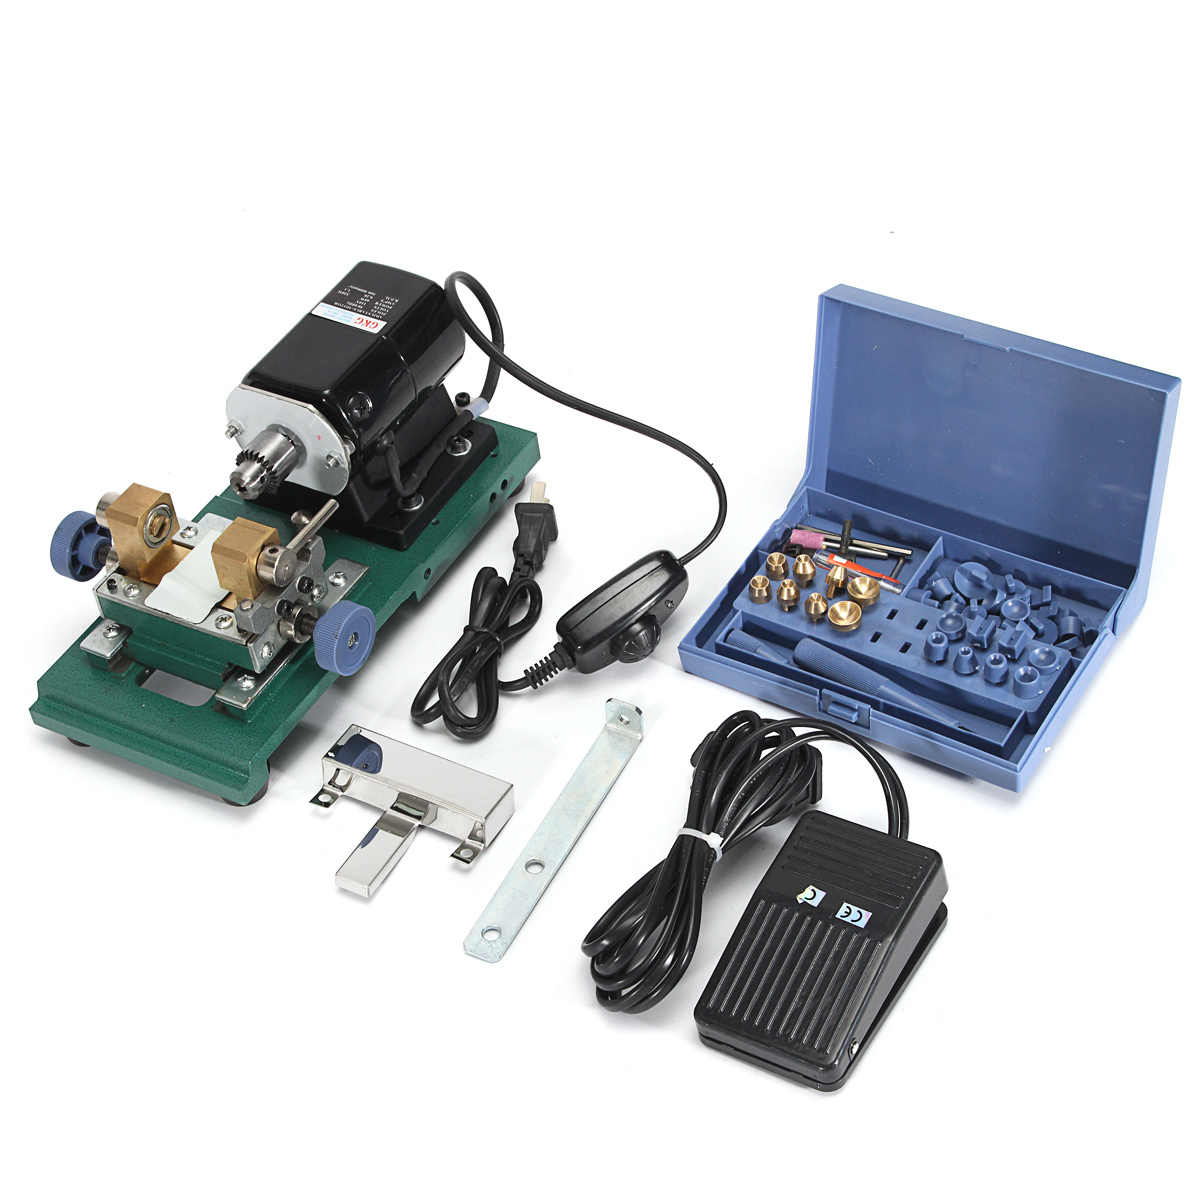 New 110V 280W 60Hz Pearl Drilling Holing Machine Driller Bead Jewelry Punch Engraving Engraver Machine Tool Full Set